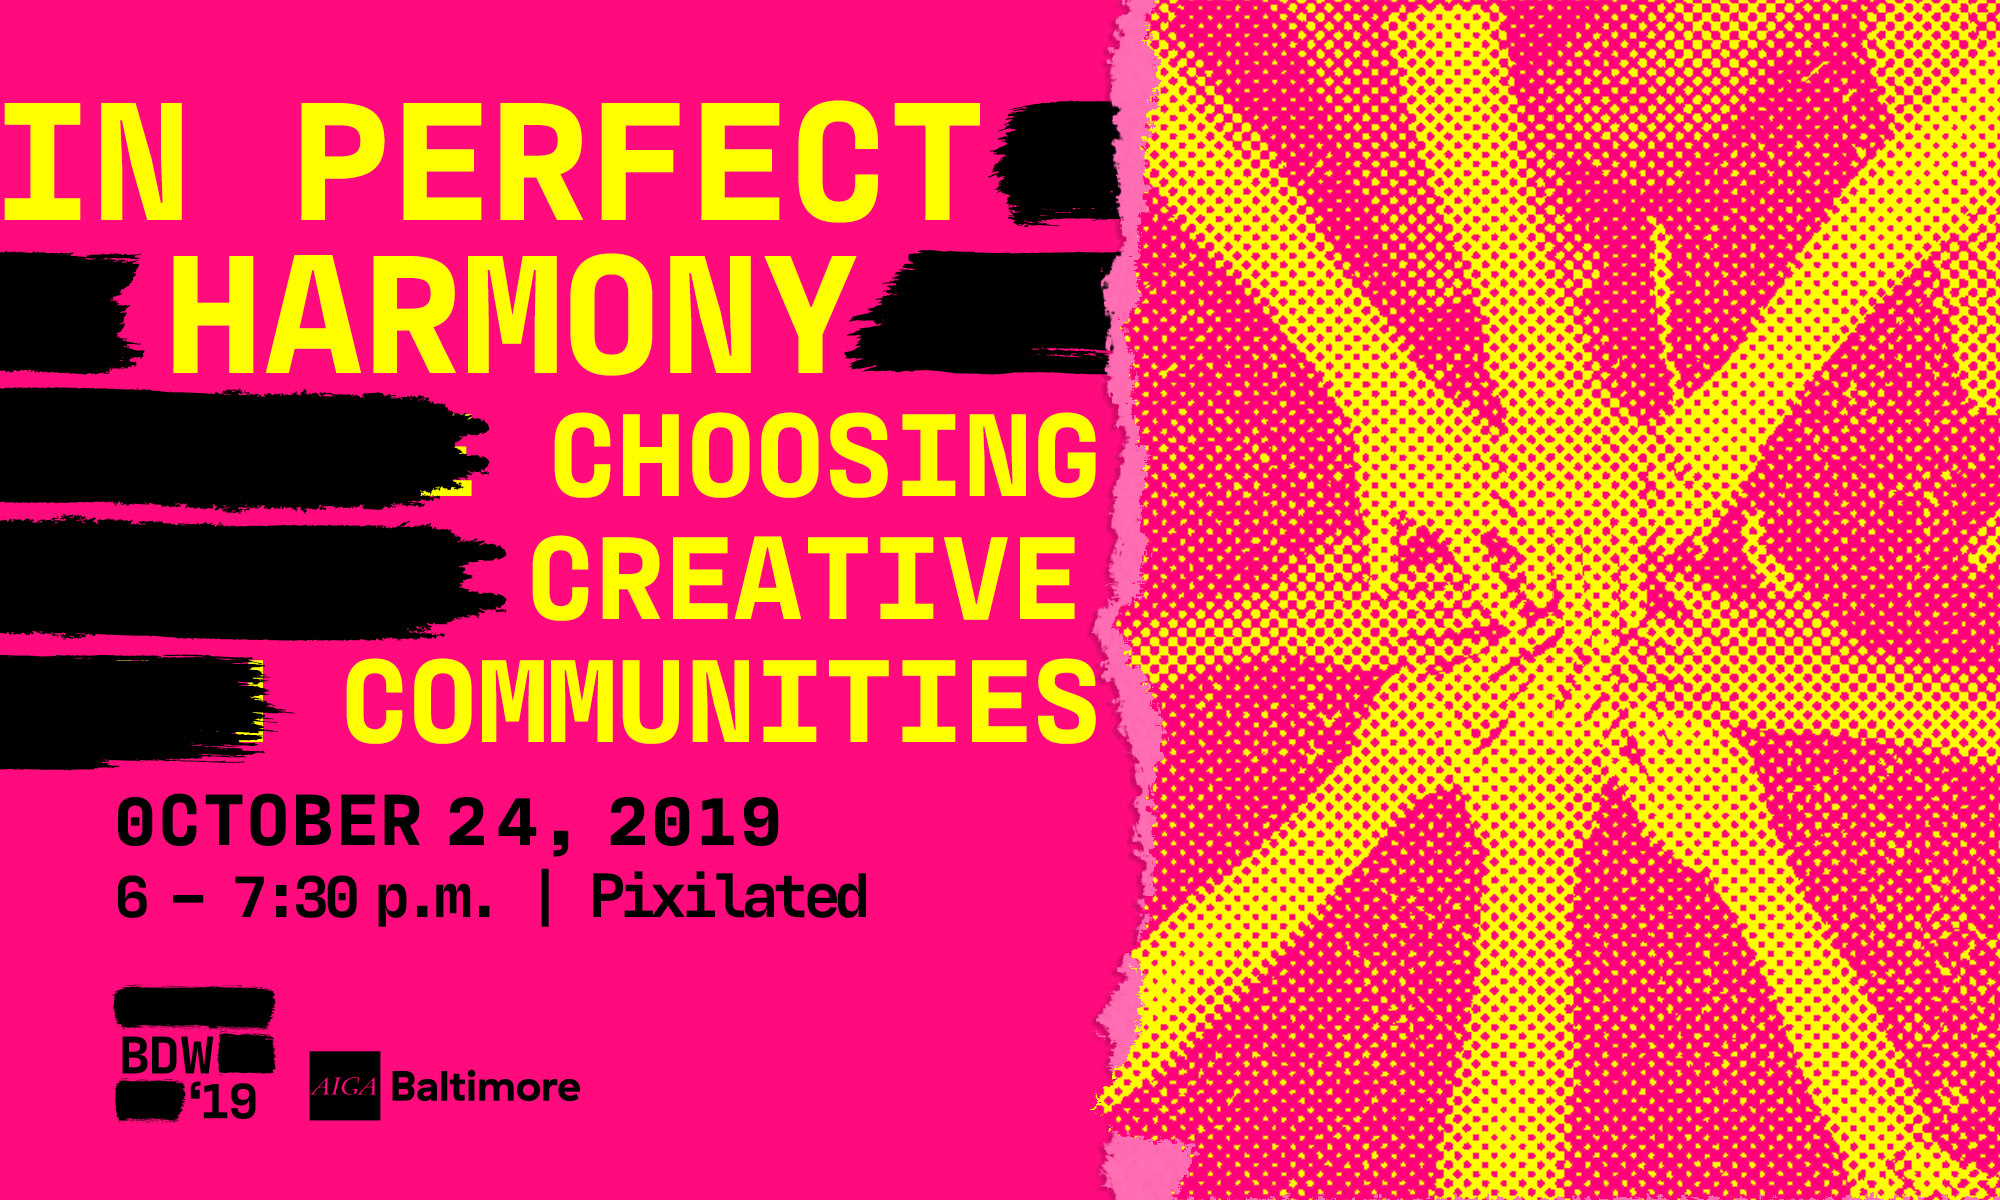 Choosing Creative Communities- AIGA Baltimore Design Week 2019 events